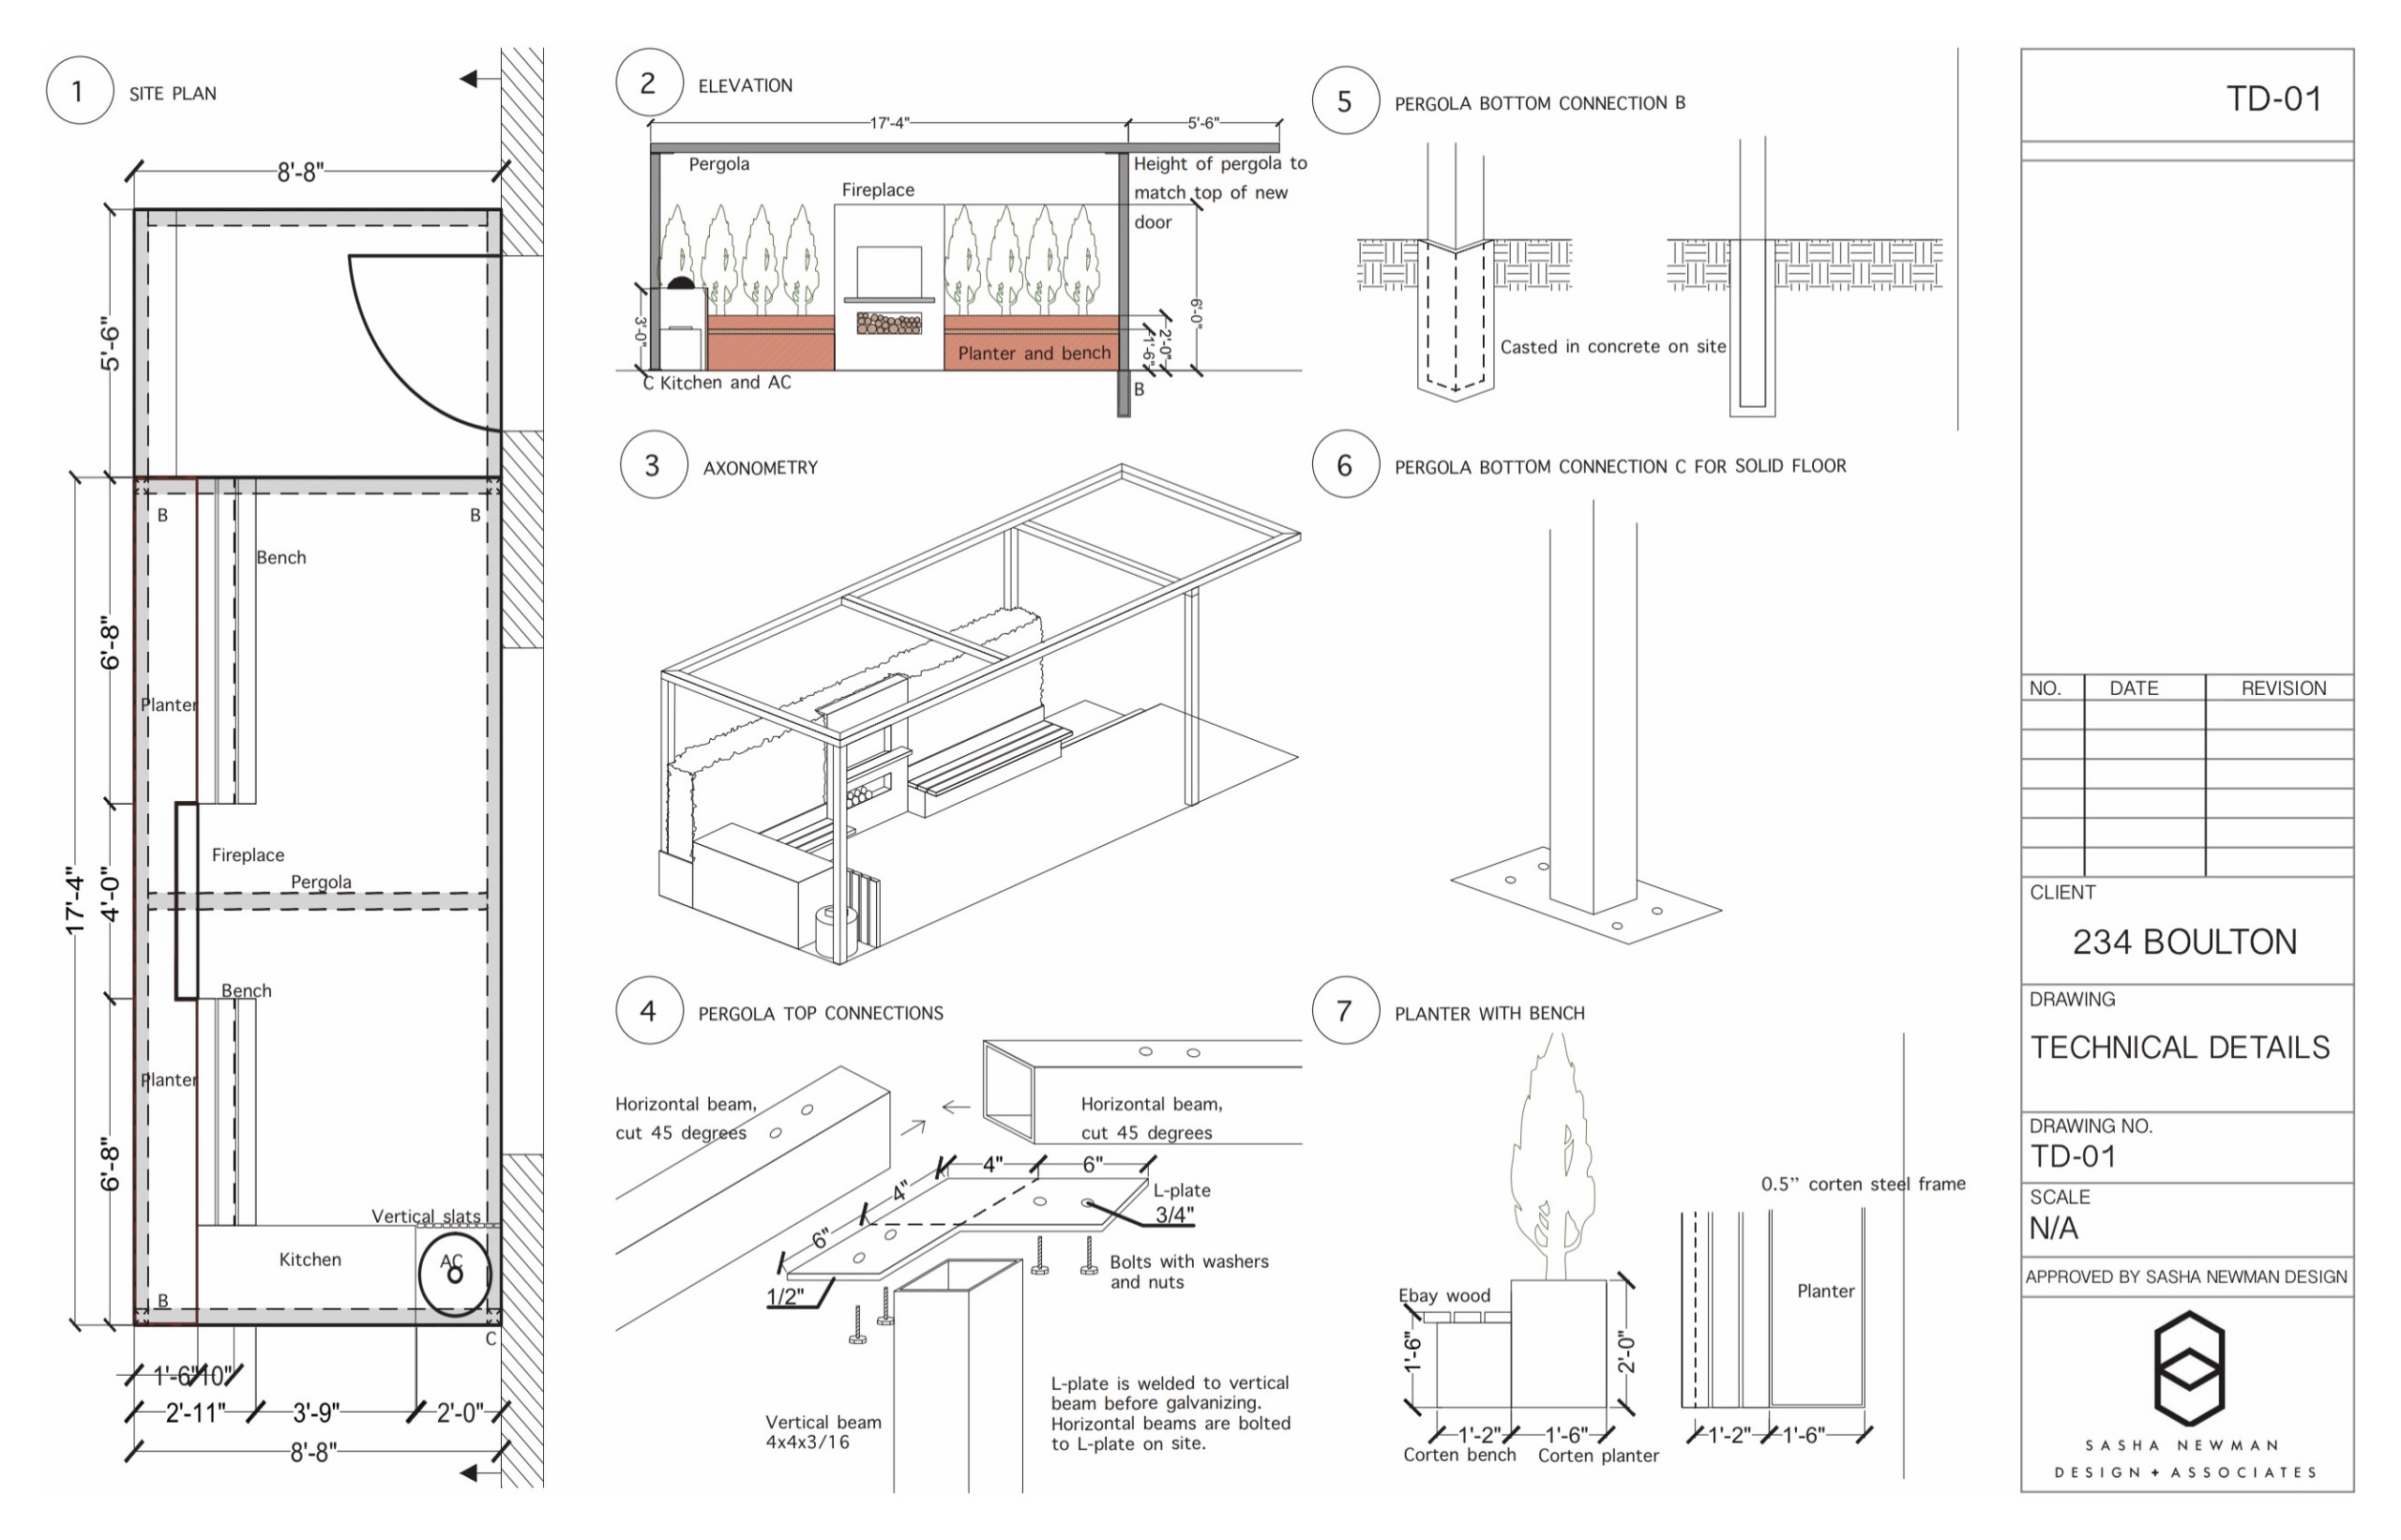 CAD Drawings presentation with details and 3D renderings